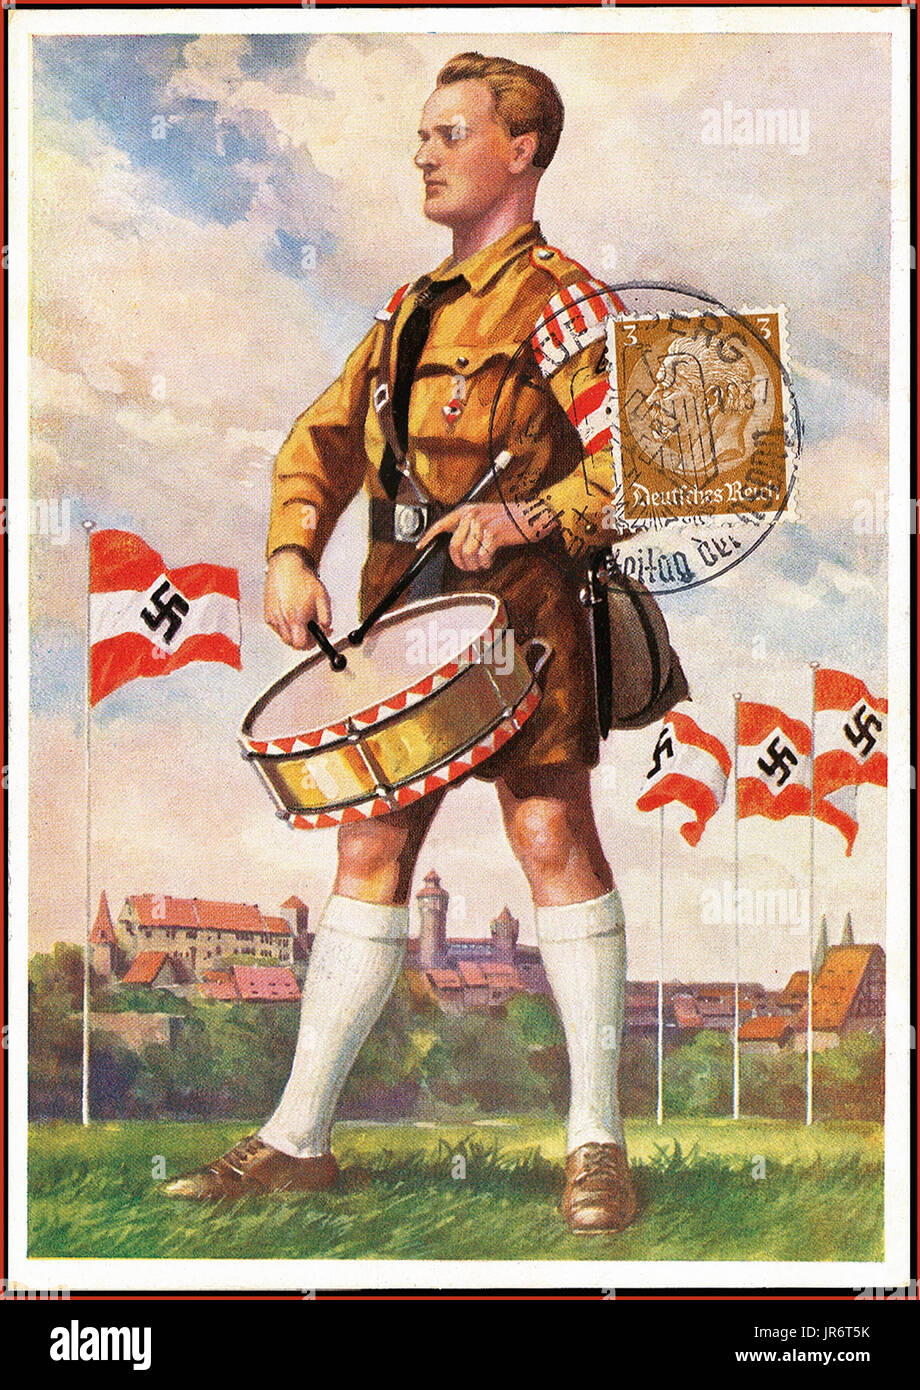 nazi youth Find hitler youth for sale at gunbrokercom, the world's largest gun auction site you can buy hitler youth with confidence from thousands of sellers who list every day at gunbrokercom, you can buy hitler youth from a trusted online source.